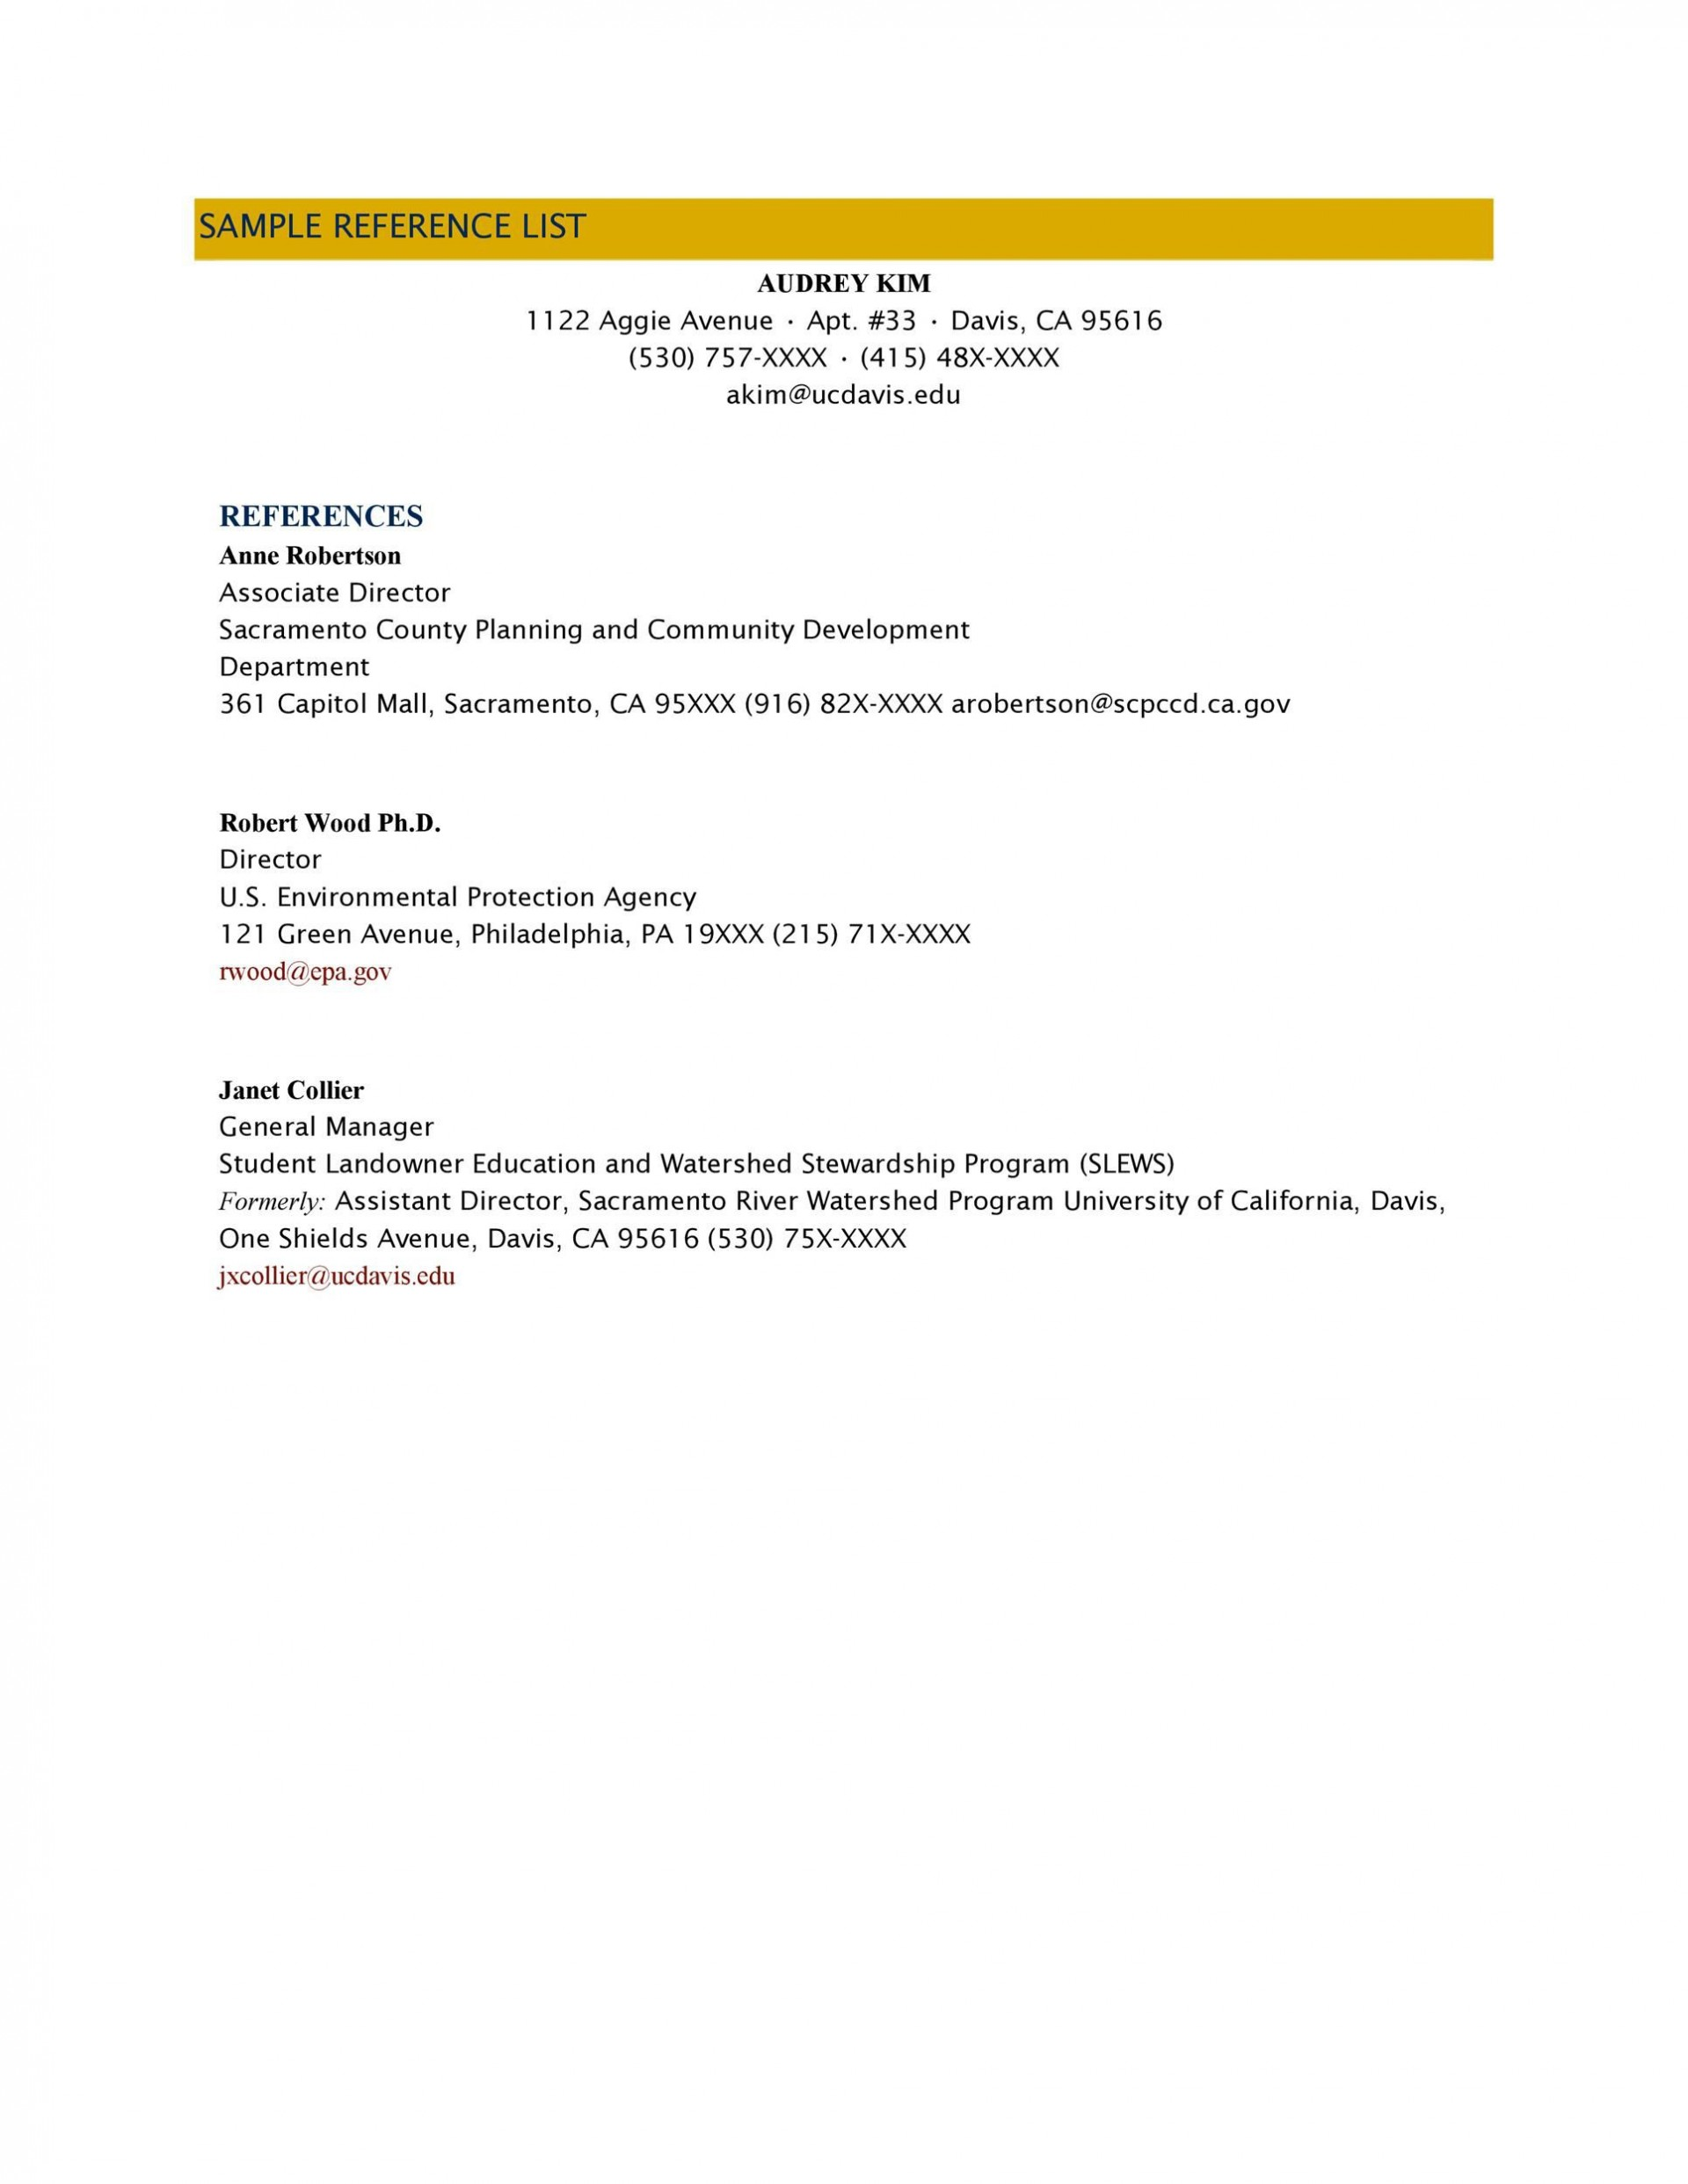 007 Breathtaking List Of Reference Template Idea  Employment Format Professional Free1920